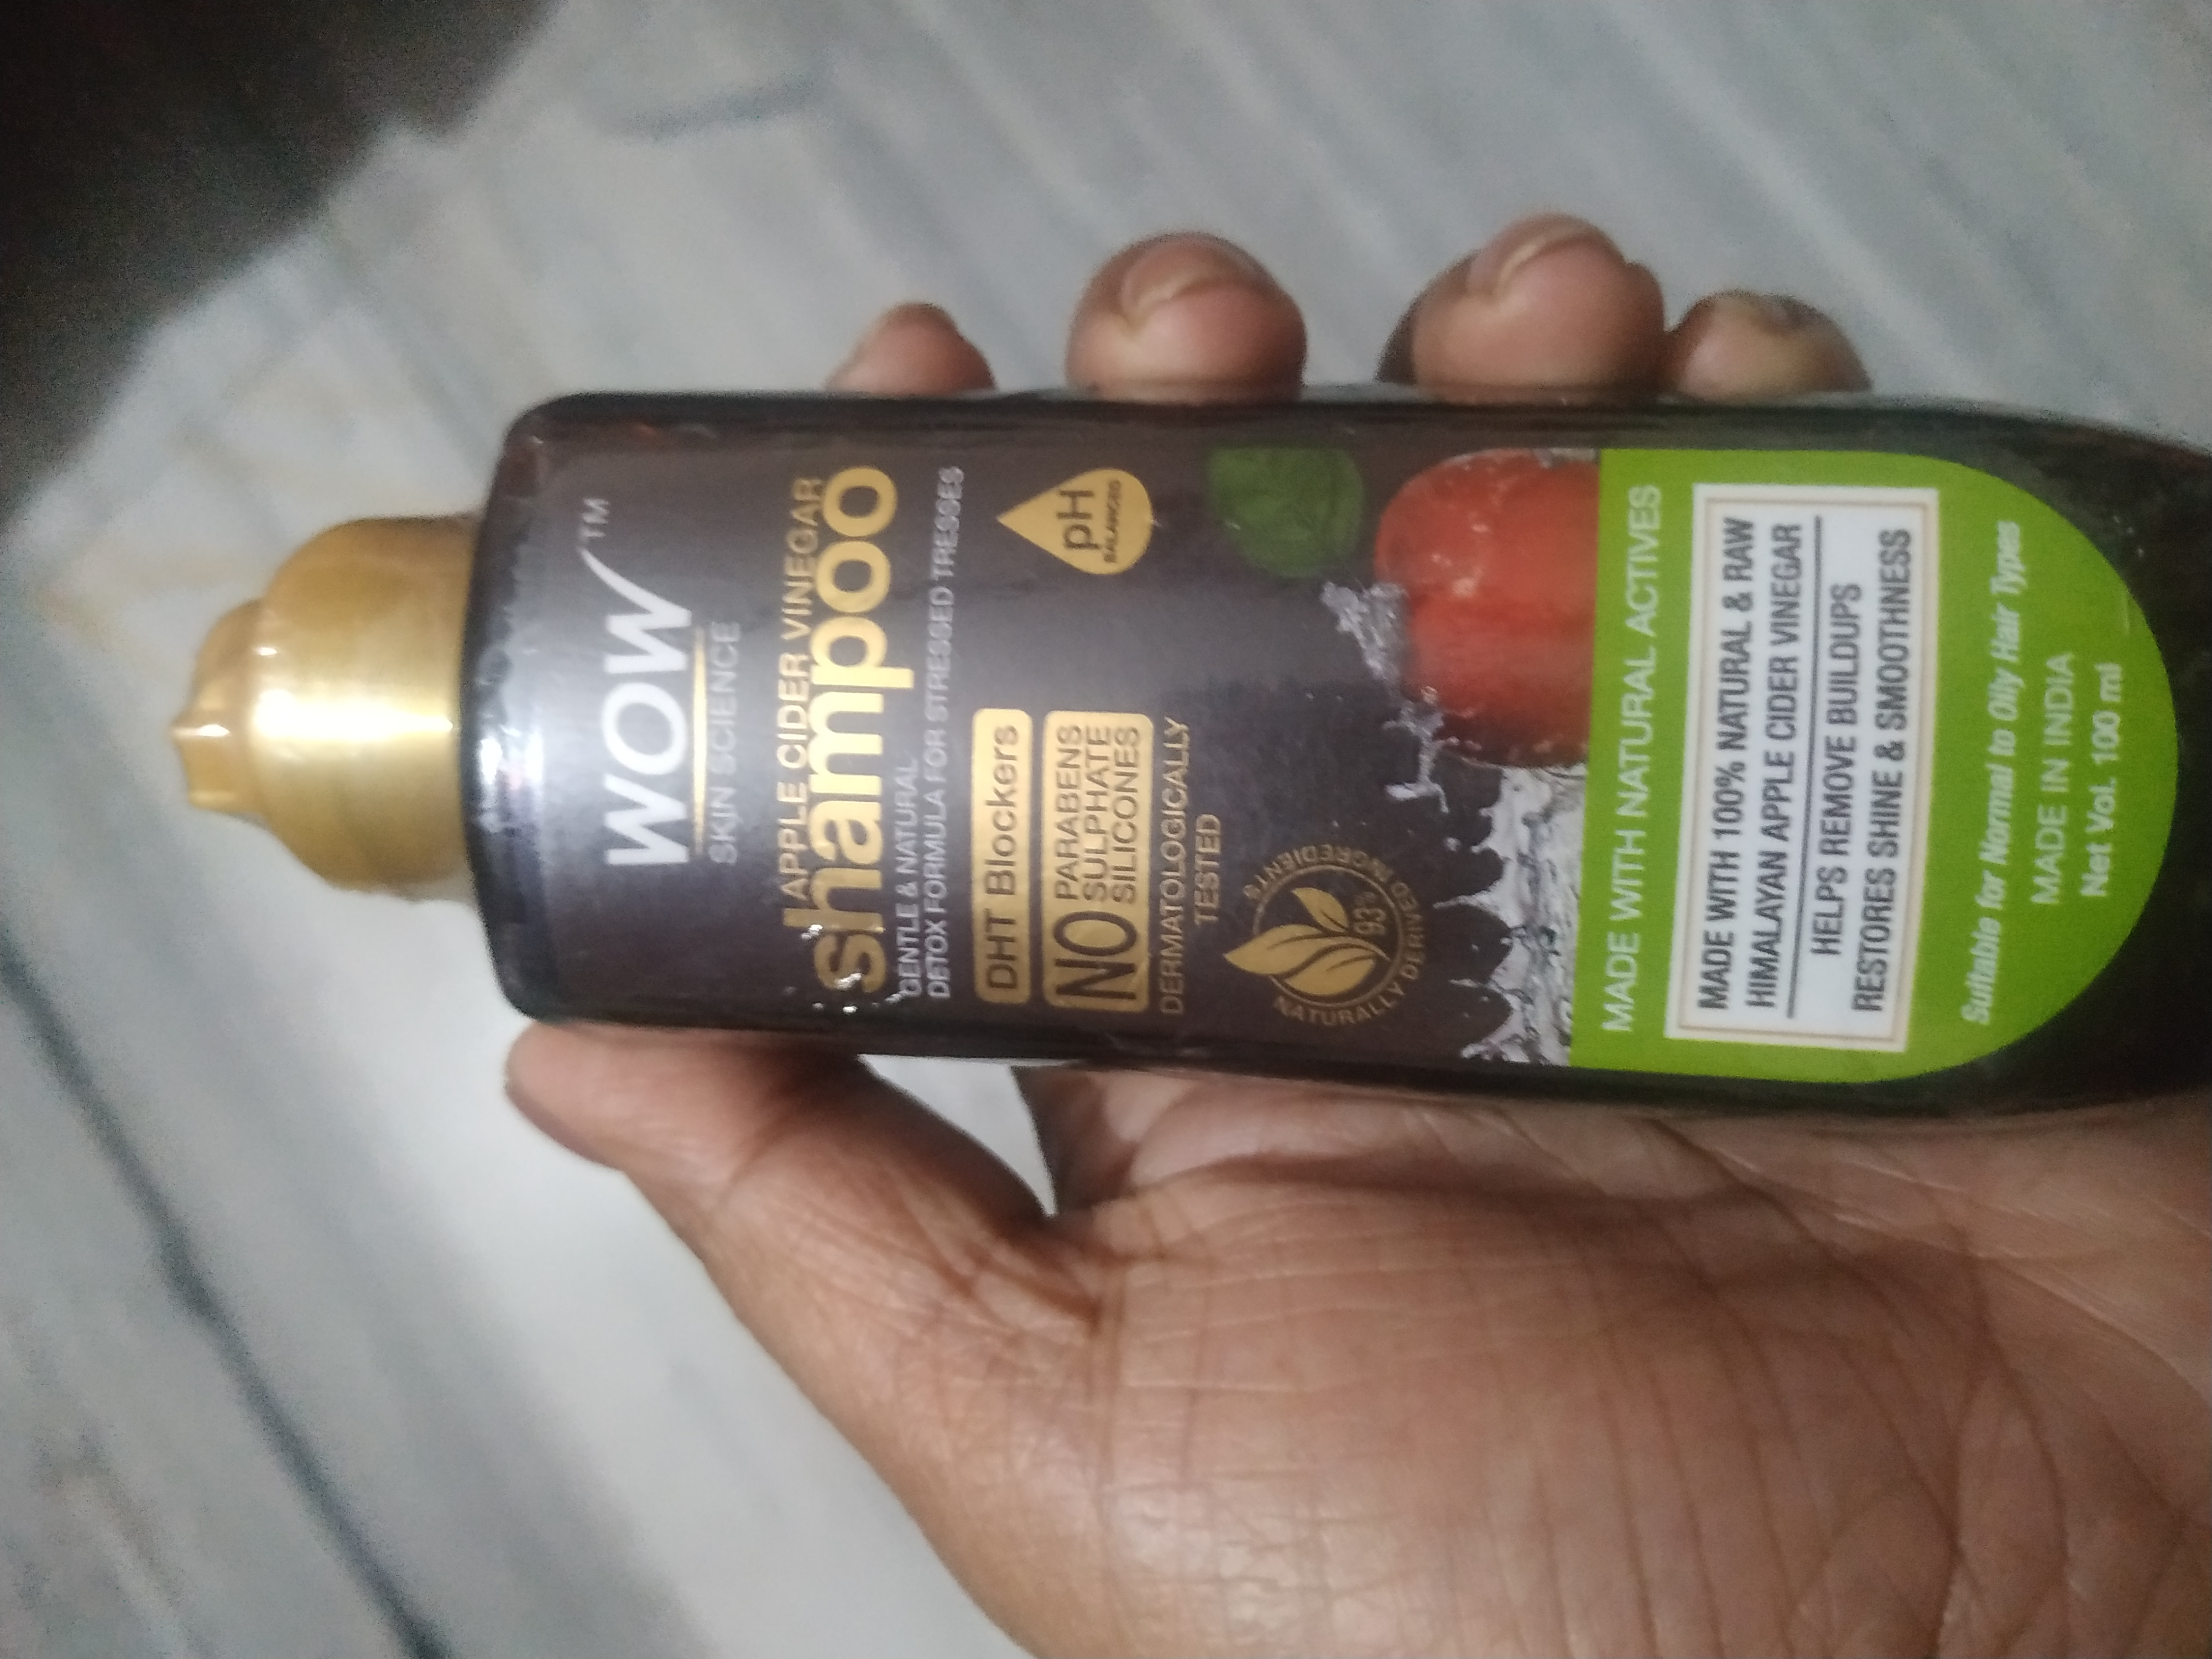 WOW Skin Science Apple Cider Vinegar Shampoo - No Parabens & Sulphate - 300 ml-Product Review-By dreamy_hub